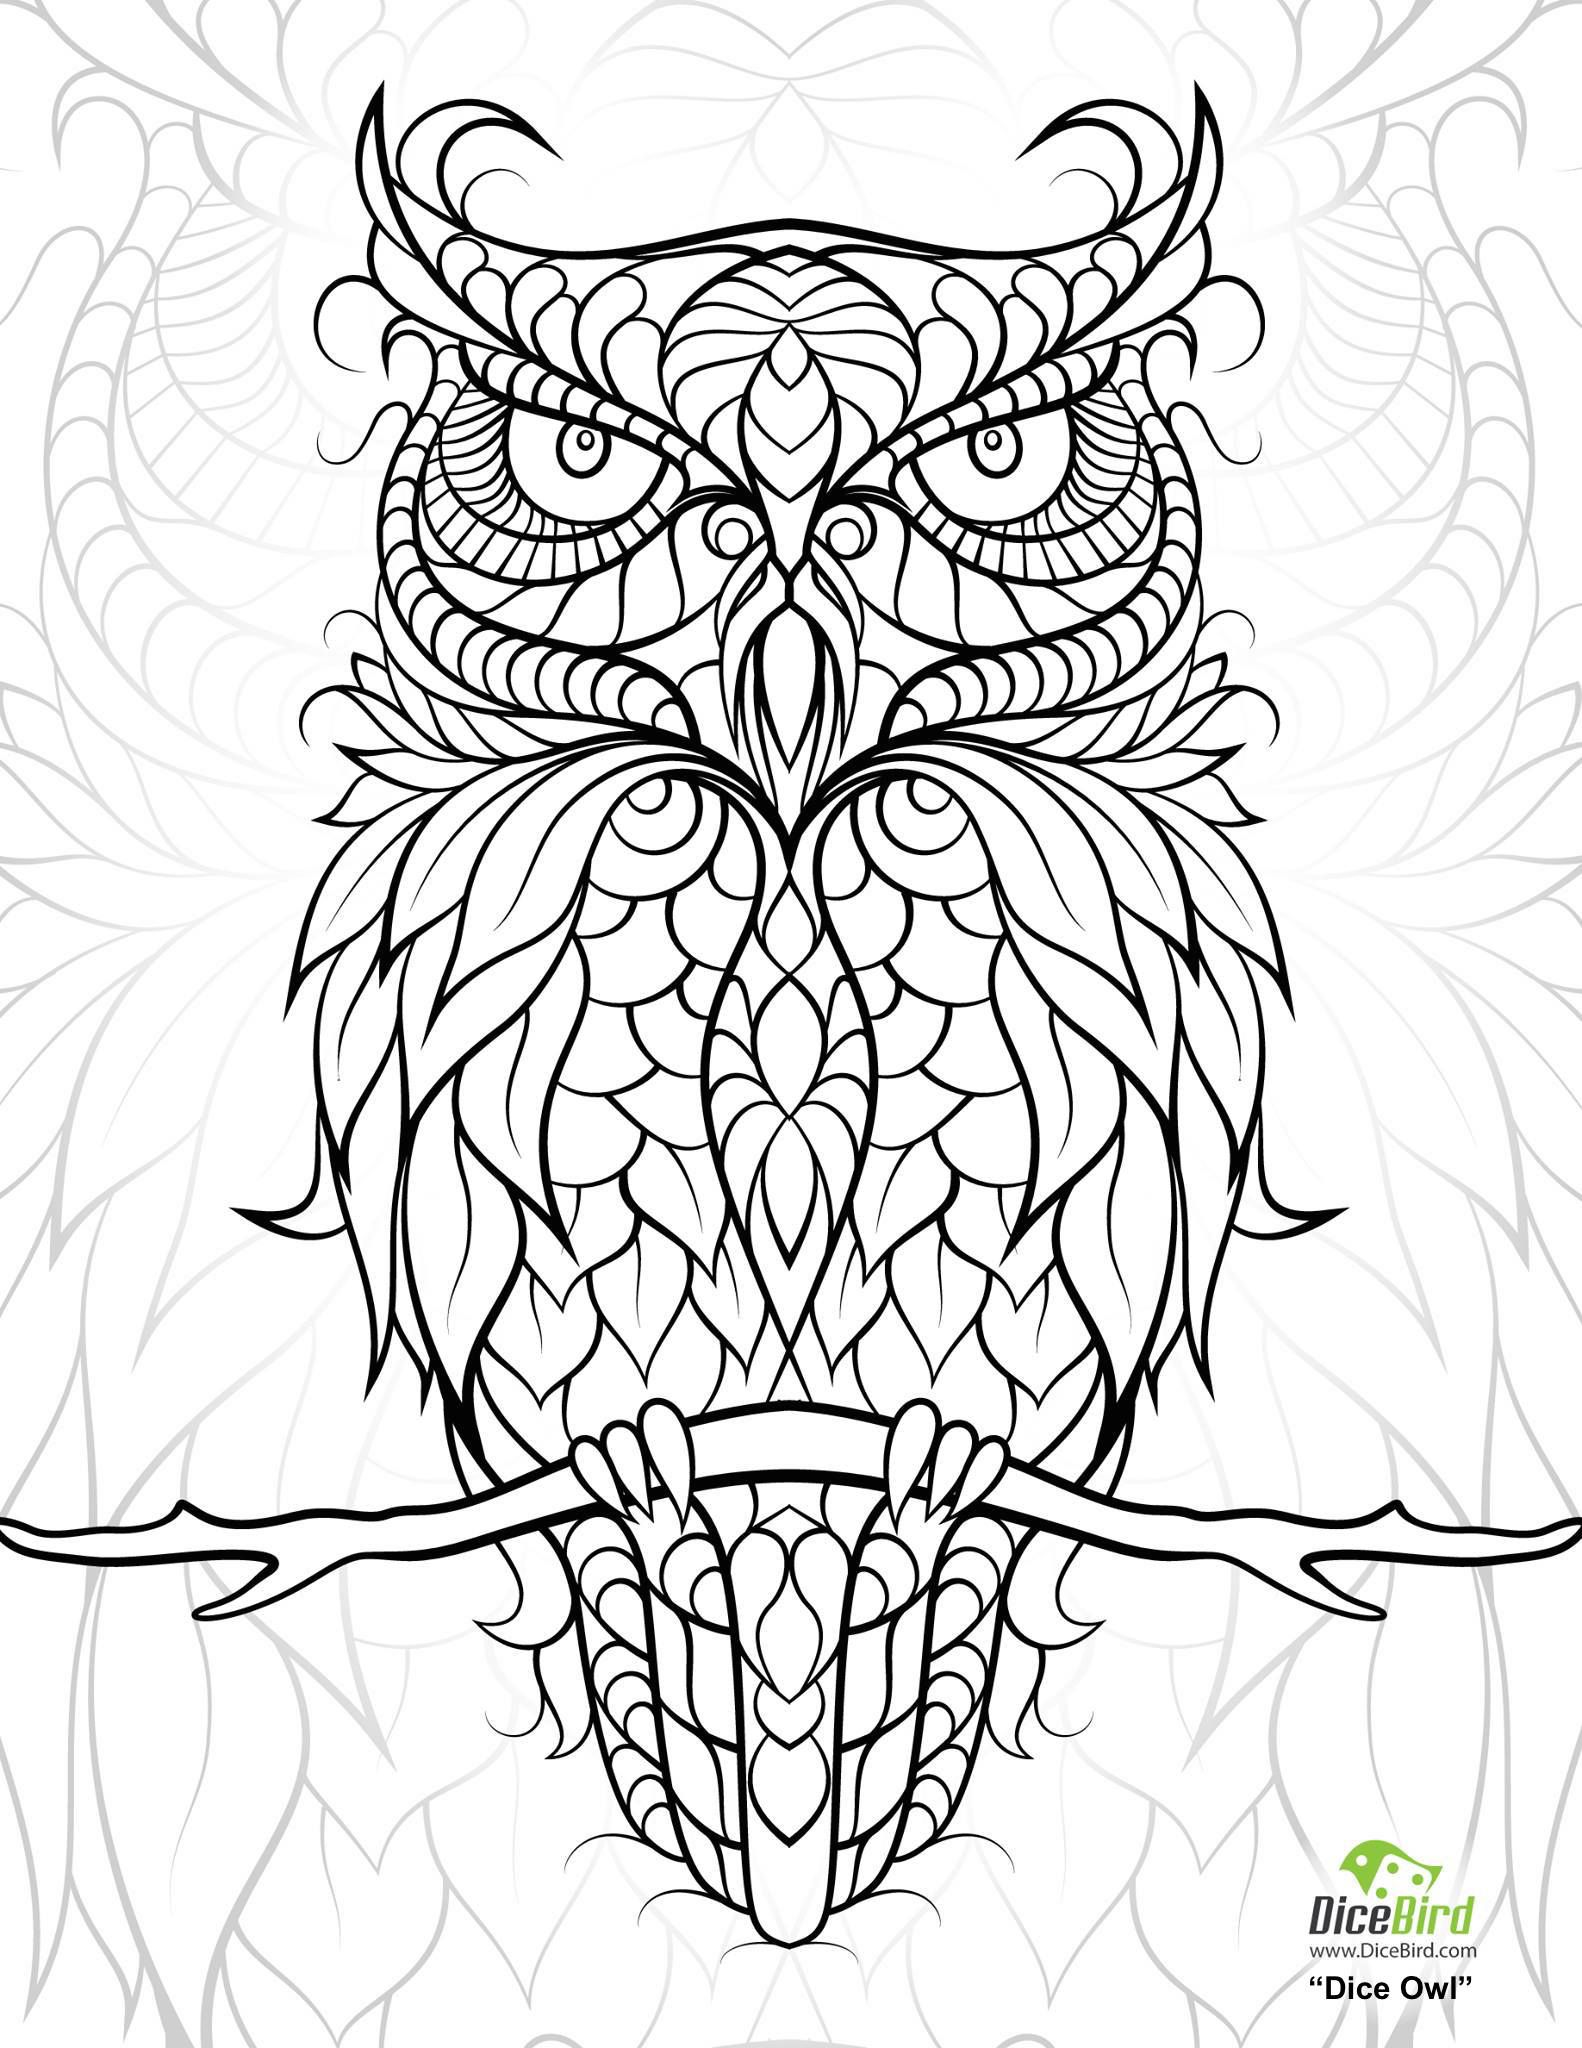 Stress relief coloring pages mandala - Diceowl Free Printable Adult Coloring Pages